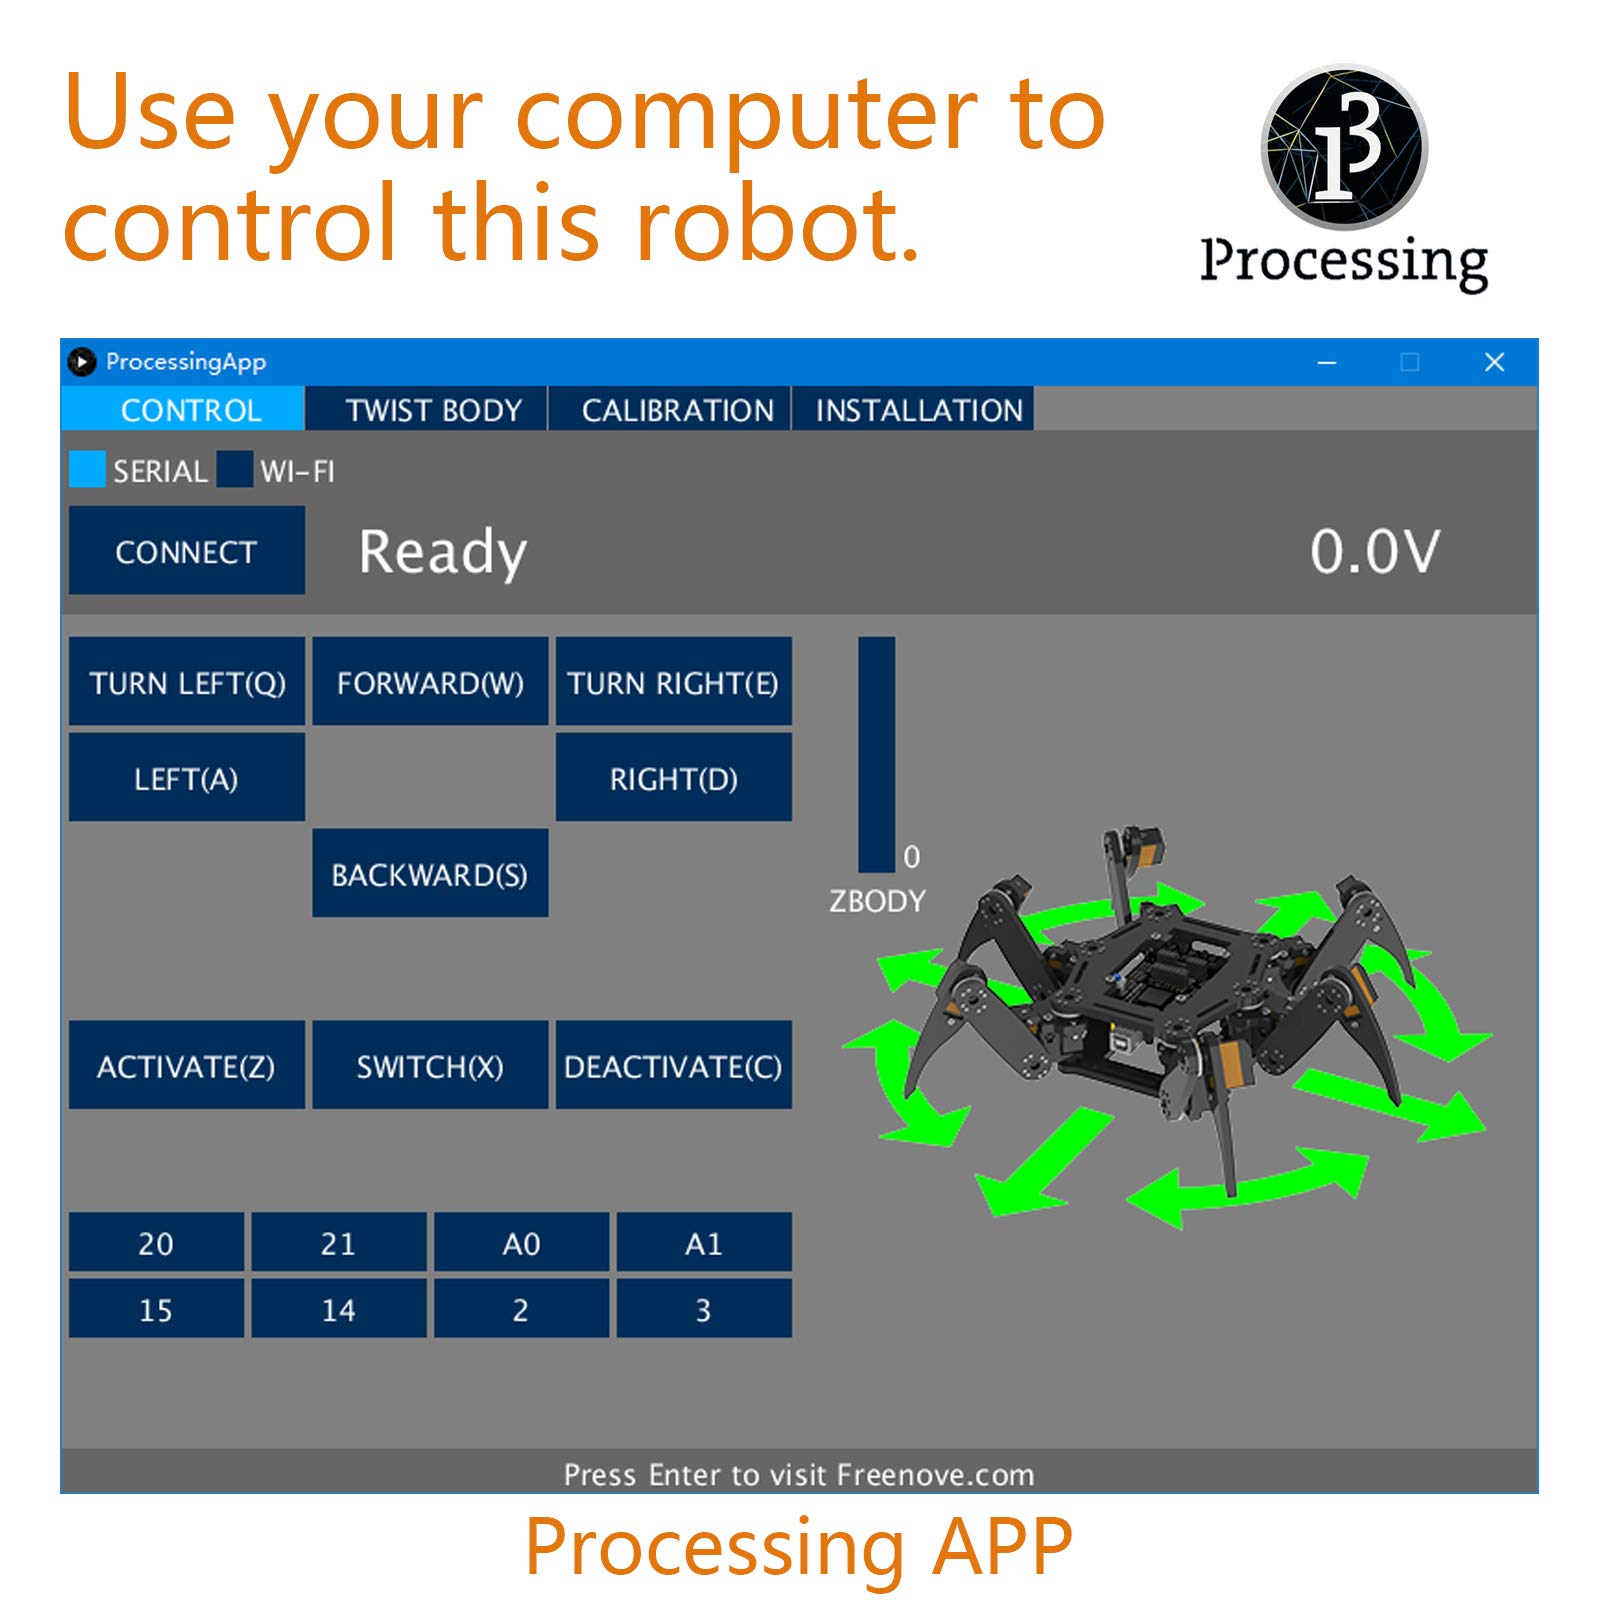 Freenove Hexapod Robot Kit with Remote Control, Compatible with Arduino Raspberry Pi Processing, Spider Walking Crawling STEAM STEM Project by Freenove (Image #4)